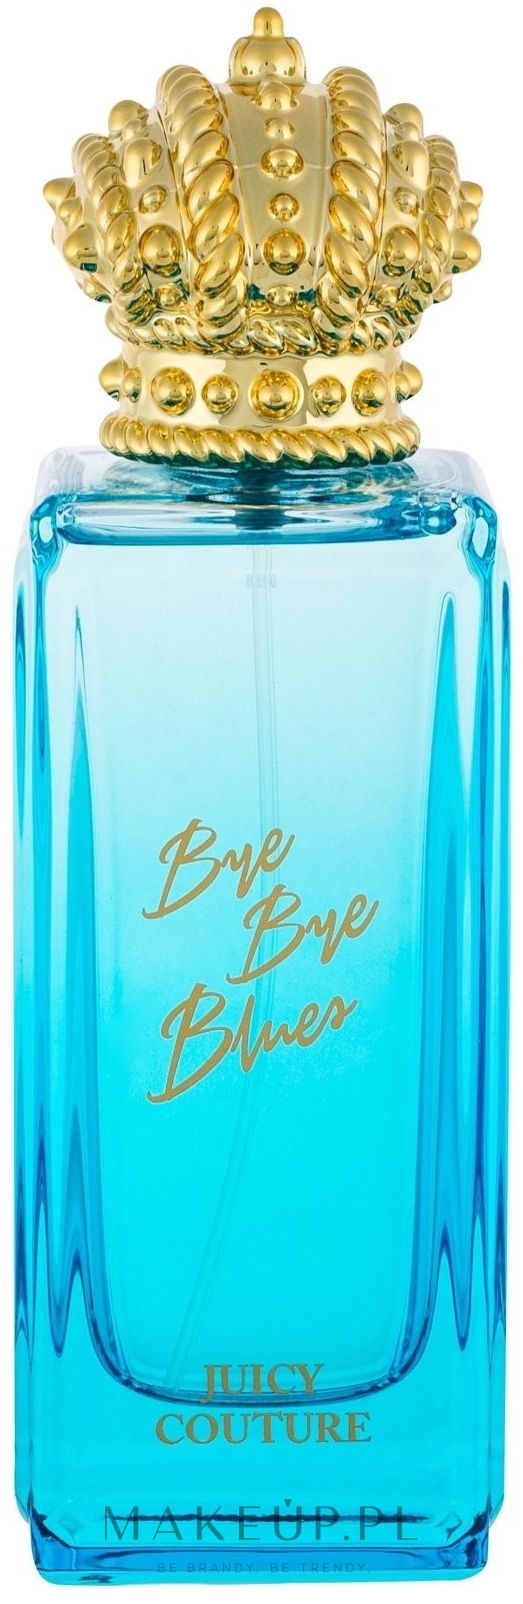 juicy couture rock the rainbow - bye bye blues